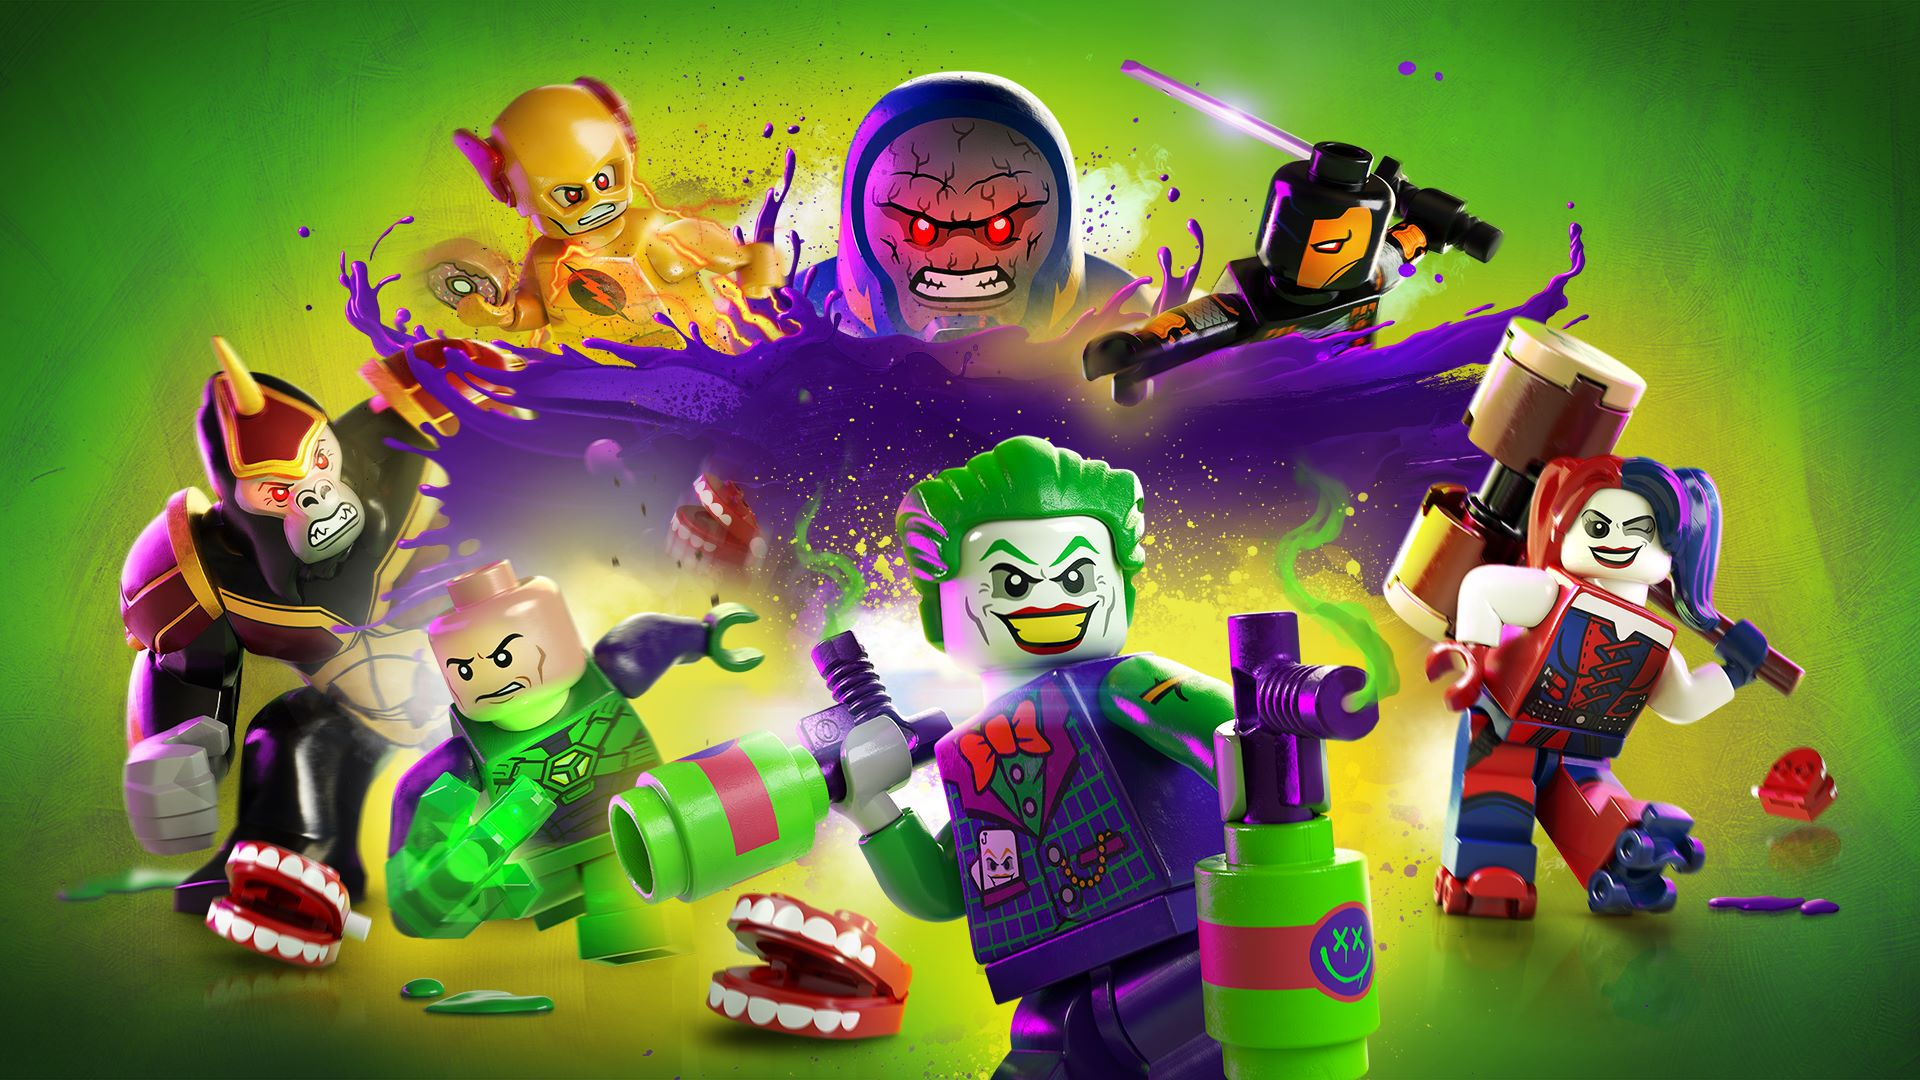 lego-dc-super-villains-image.jpeg